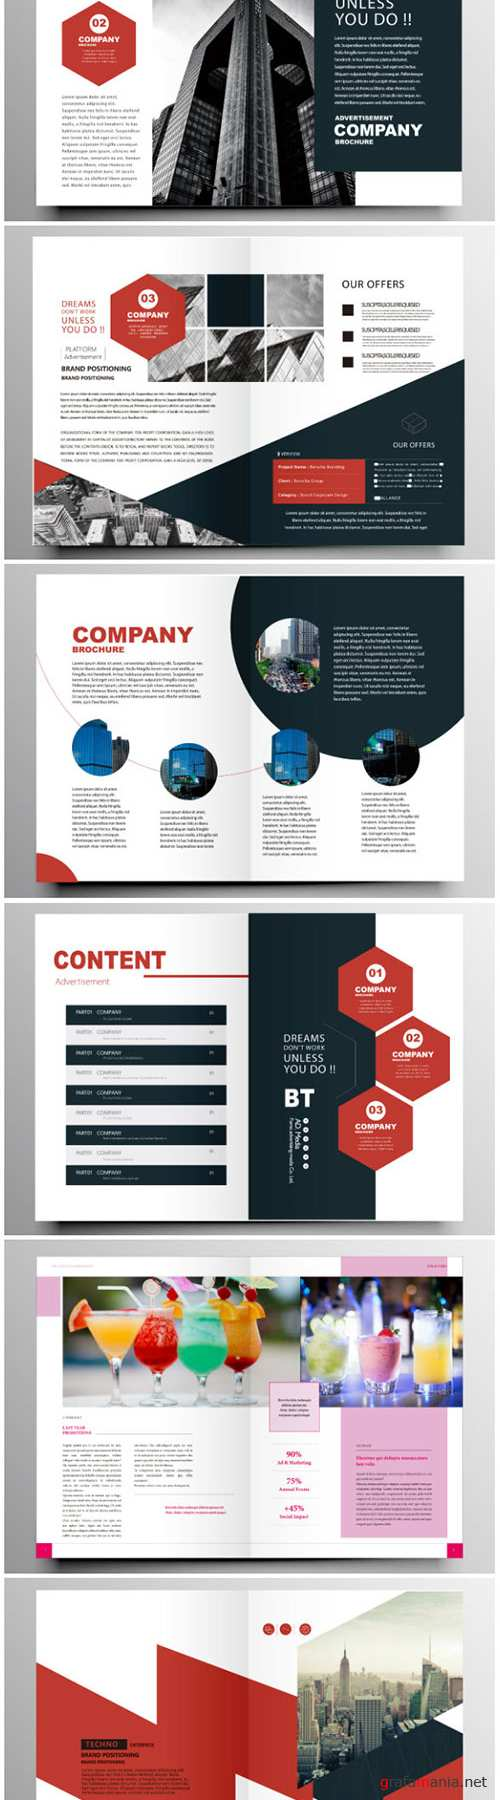 Brochure template vector layout design, corporate business annual report, magazine, flyer mockup # 192